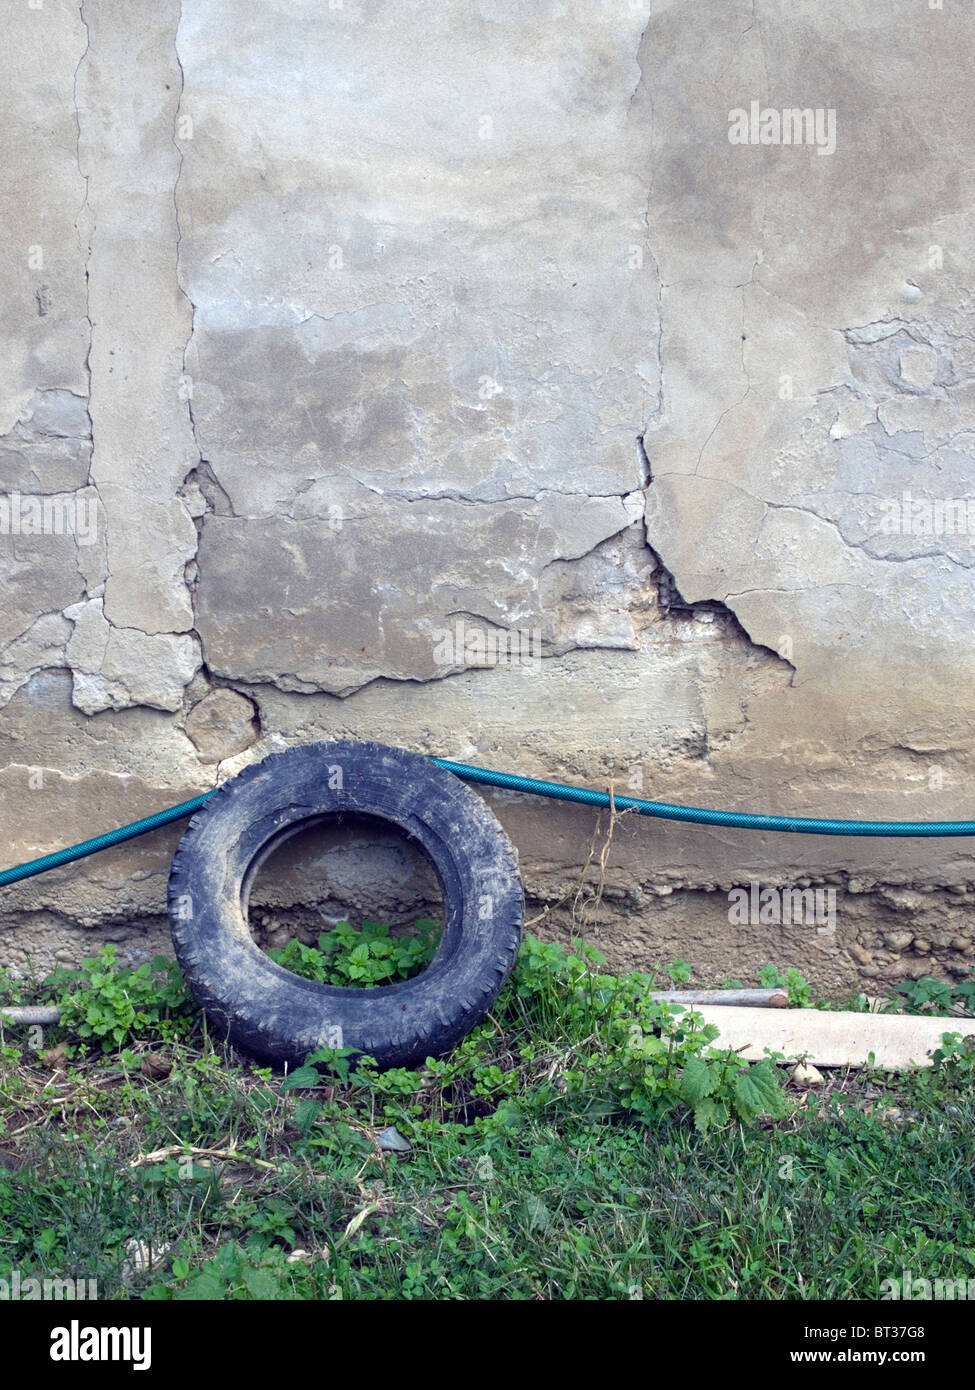 Abandoned car tire - Stock Image